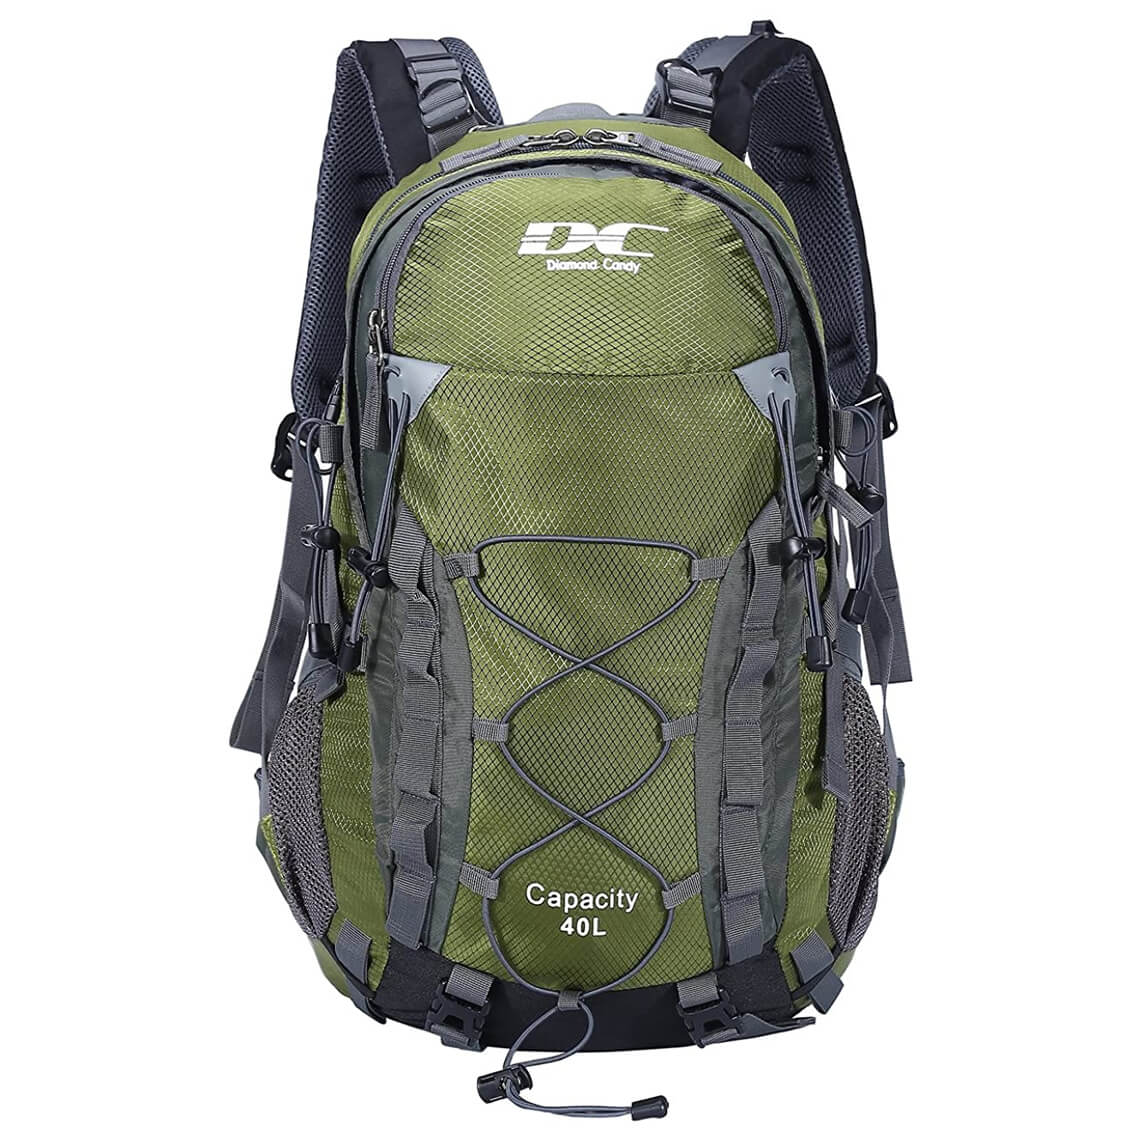 Diamond Candy Waterproof Hiking Backpack for Men and Women